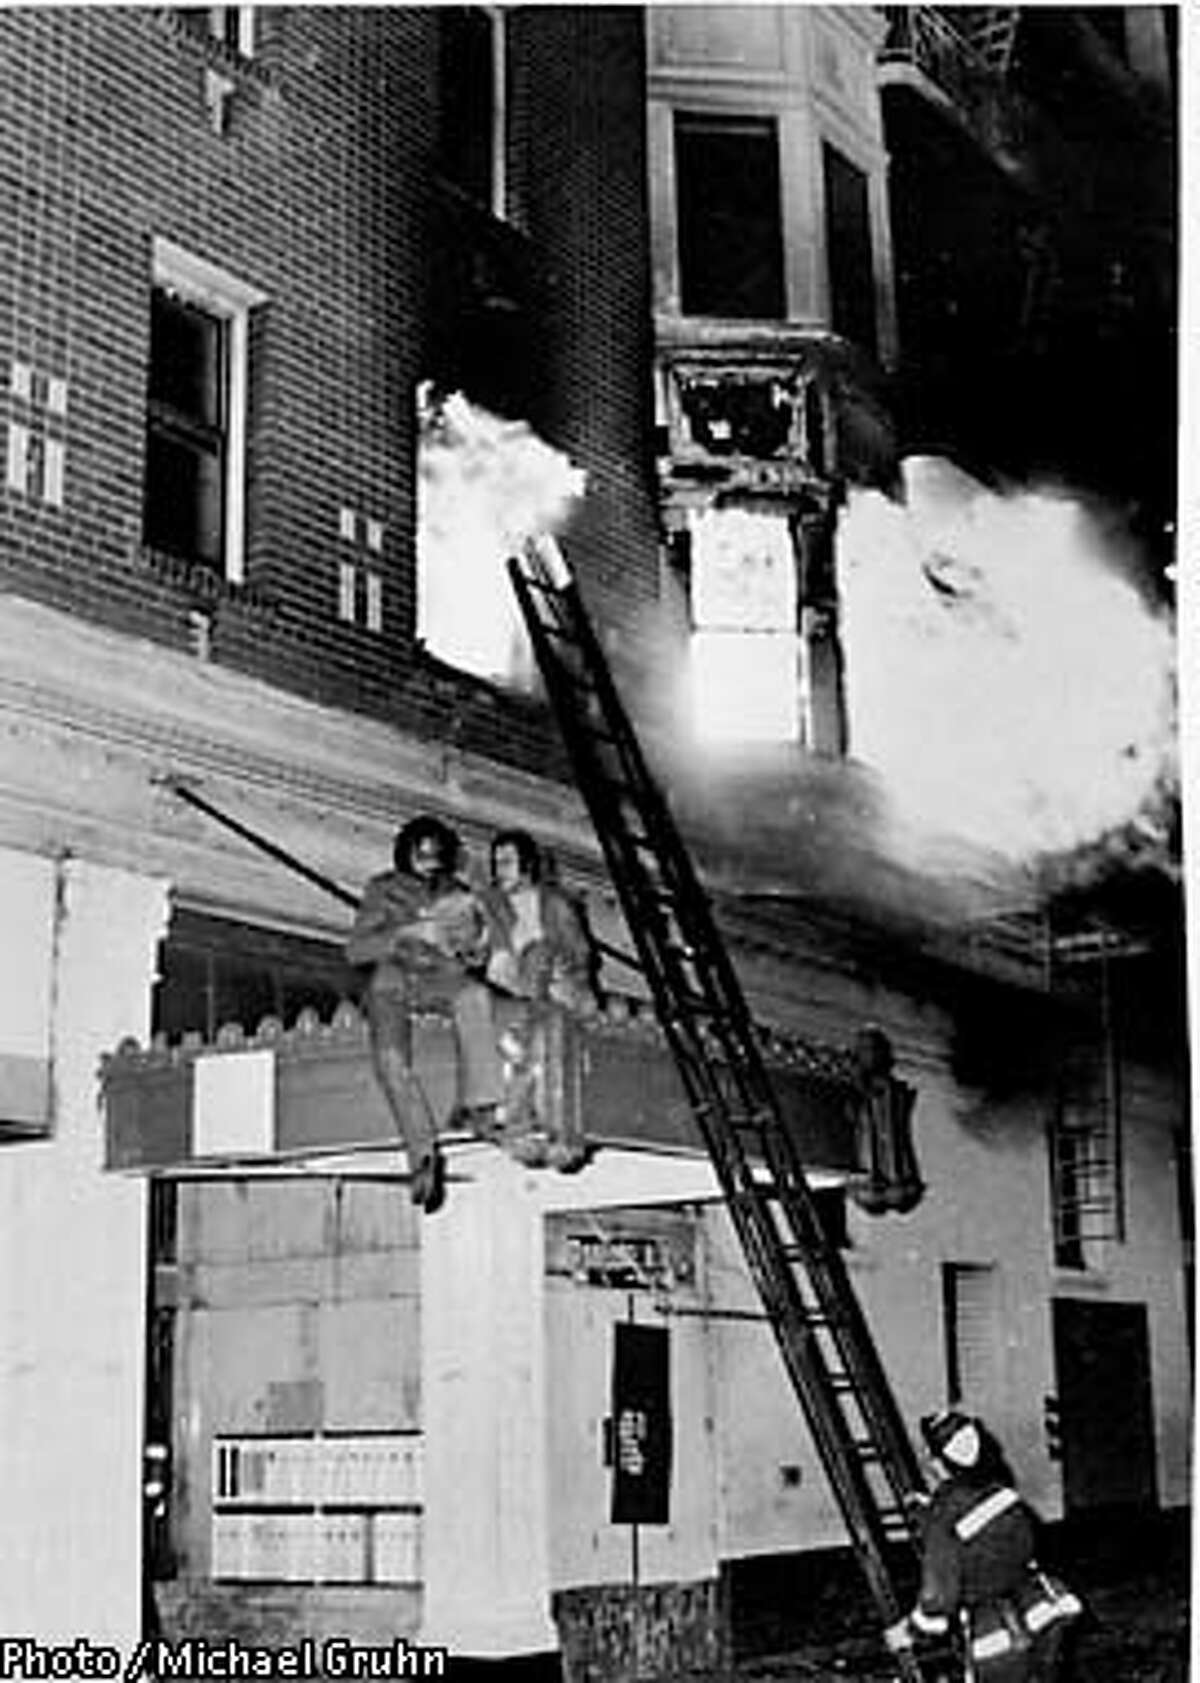 PHOTO BY MICHAEL GRUHN SPEC TO THE CHRON CORTLAND APARTMENT FIRE AT 16TH STREET AND VALENCIA IN SAN FRANCISCO, 1975